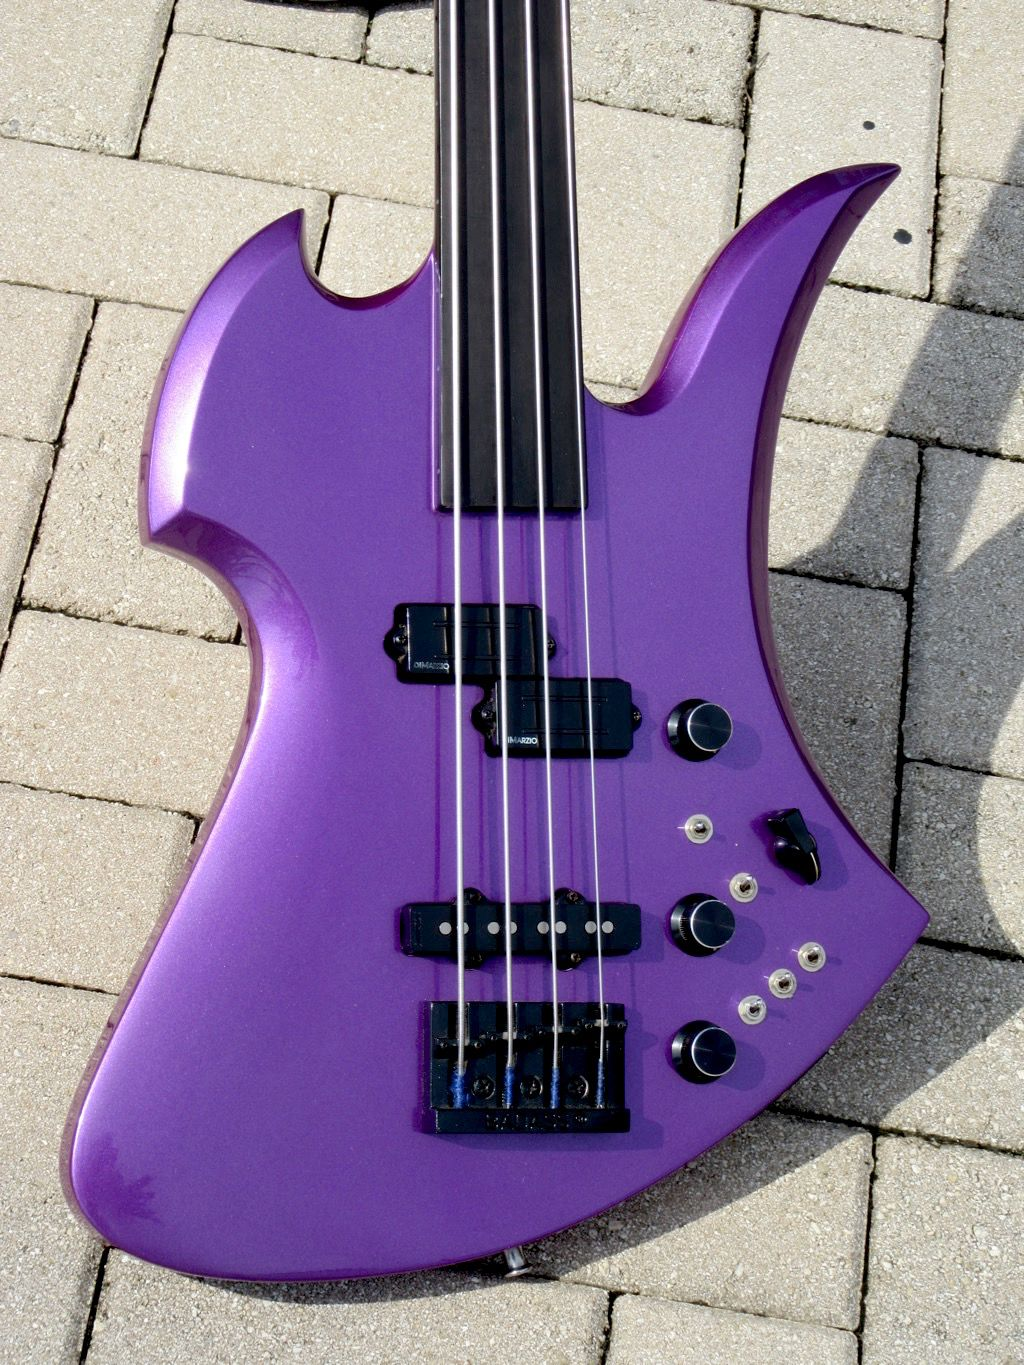 1985 b c rich mockingbird fretless bass music guitar guitar amp cool guitar [ 1024 x 1365 Pixel ]